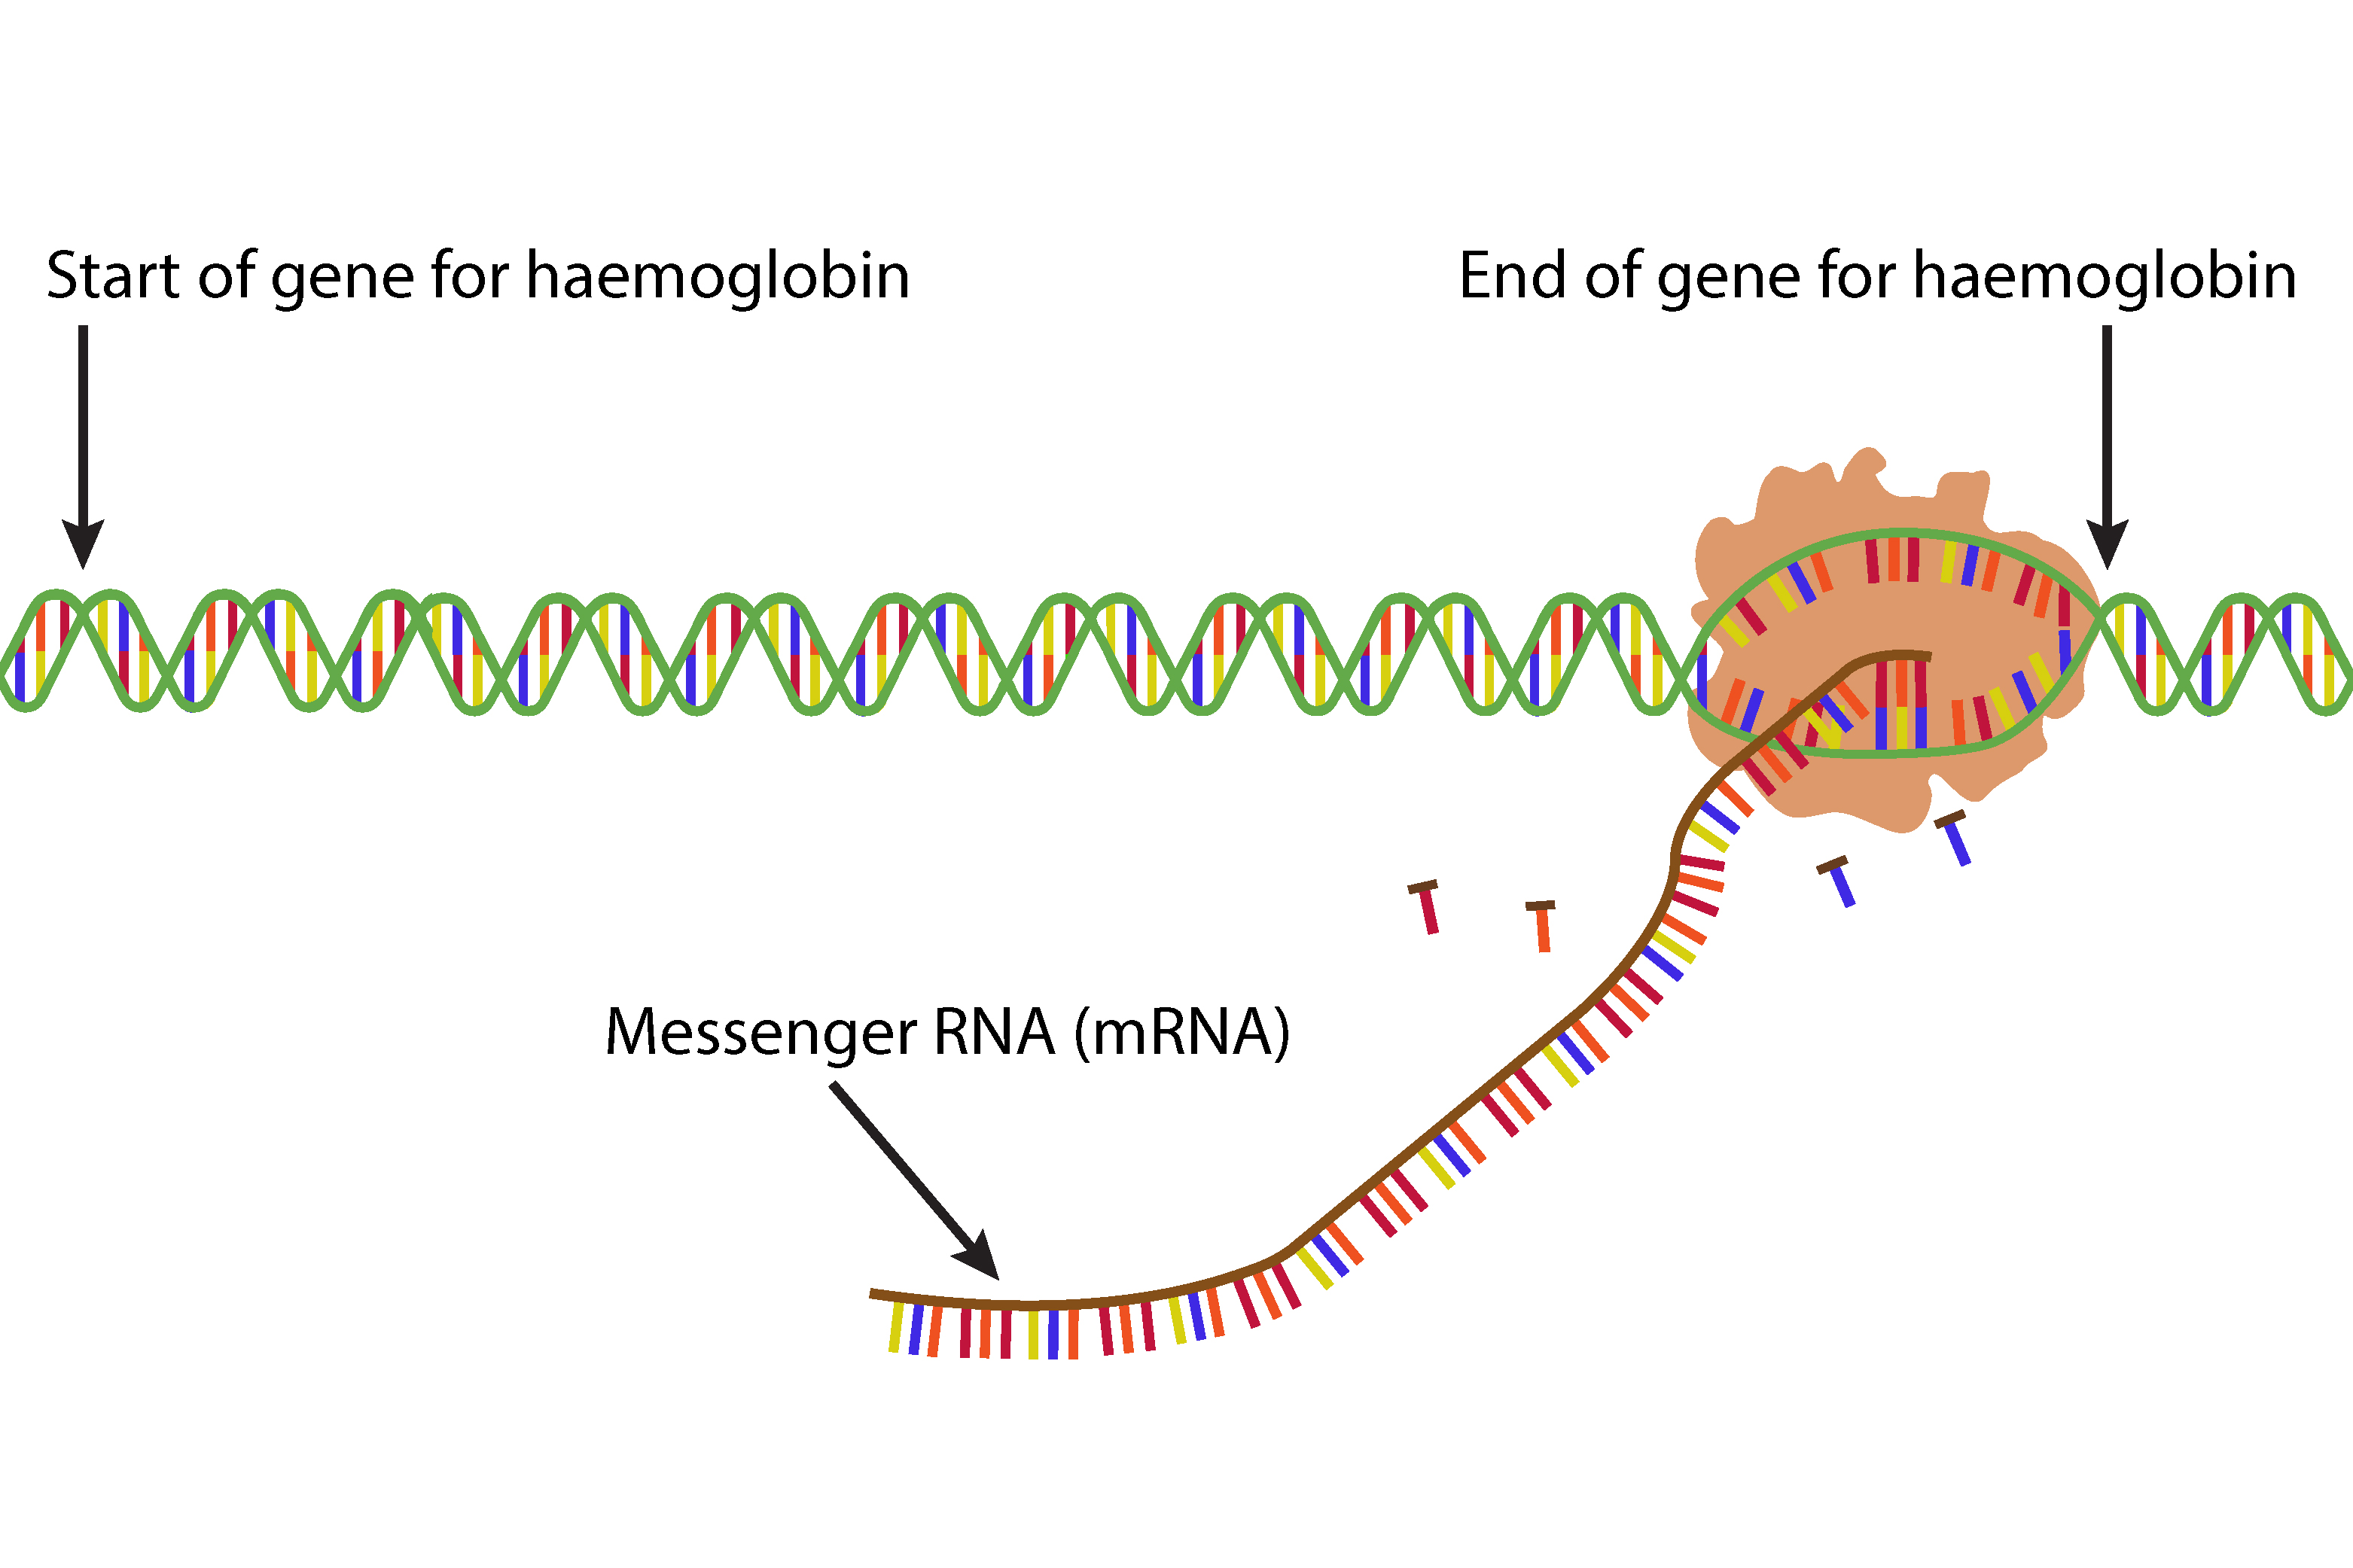 The enzyme nearing the end of the gene produces a long mRNA and starts to close the DNA